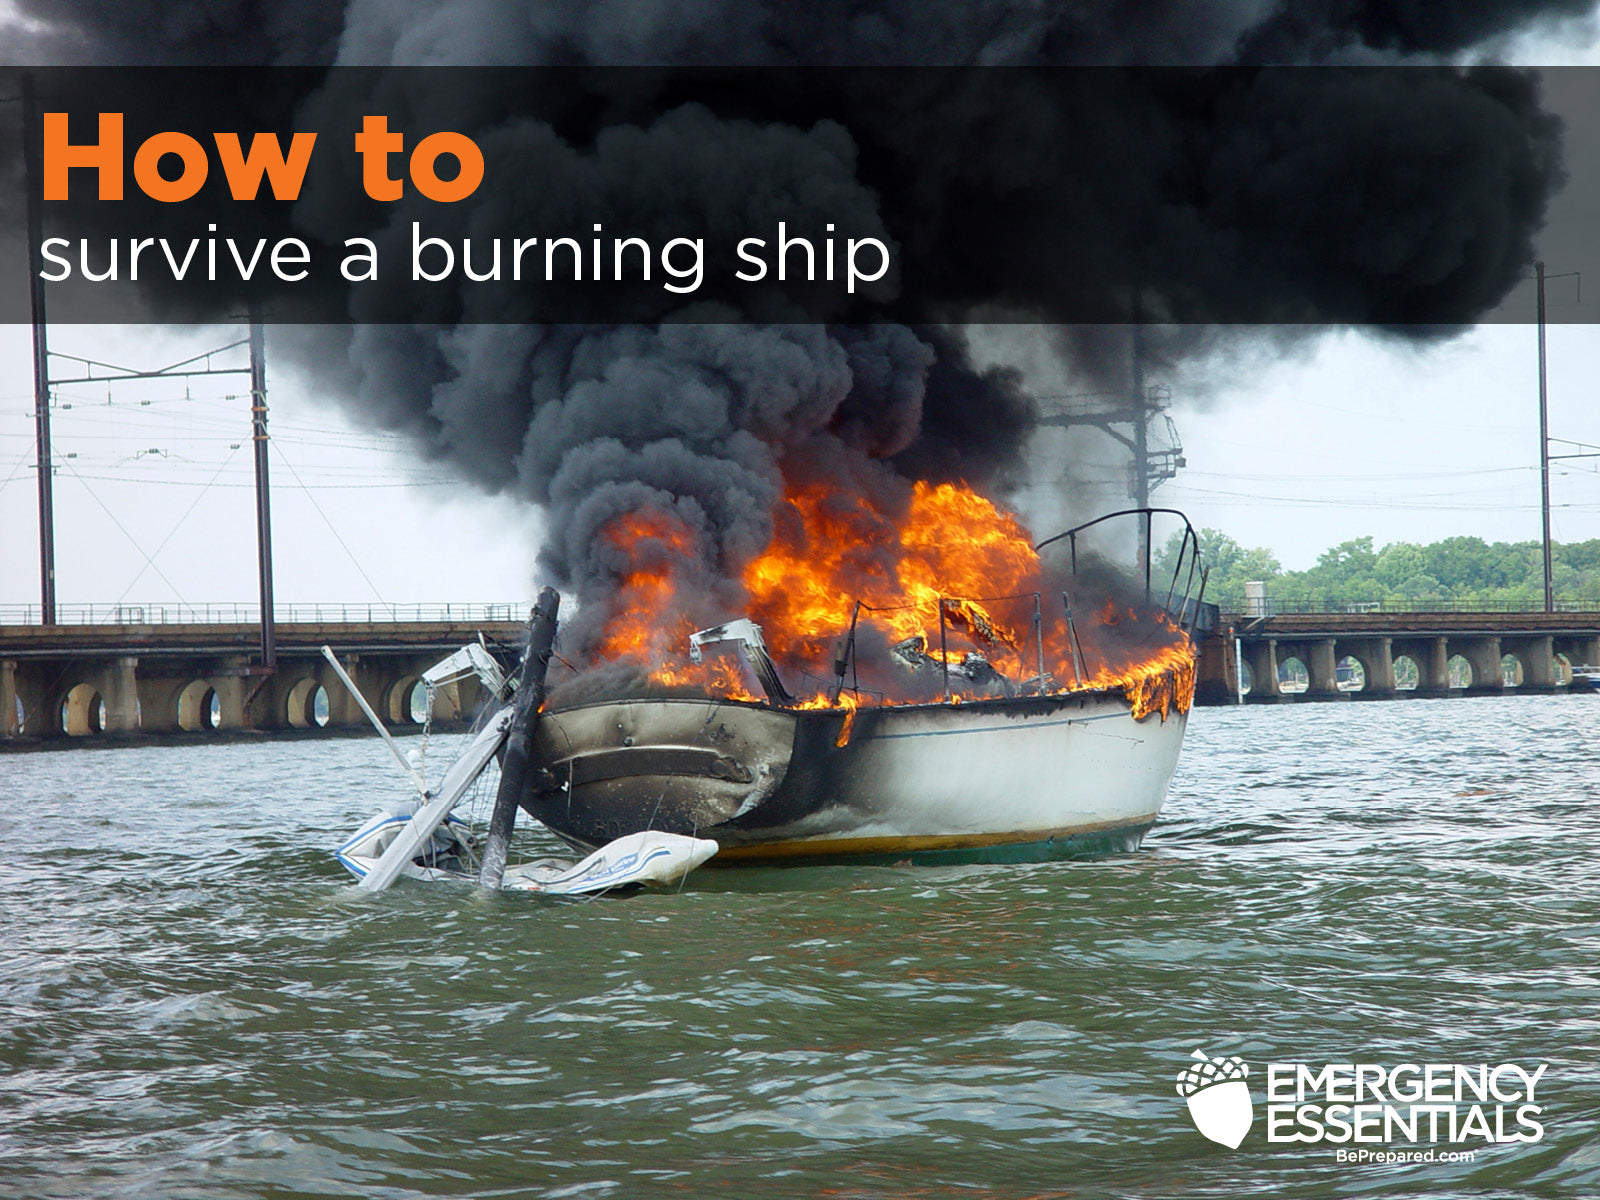 How to Survive a Burning Ship